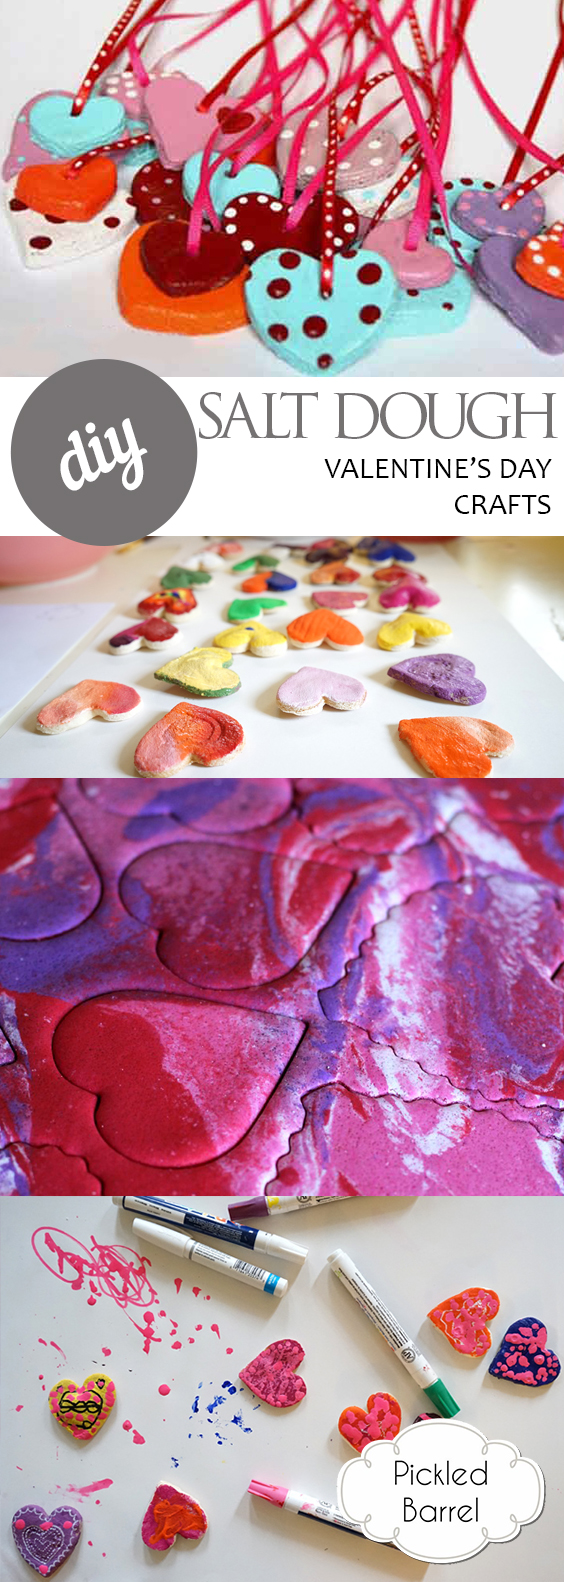 DIY Salt Dough Valentines Day Crafts| Valentines Day Crafts, Easy Crafts, Holiday Craft Ideas, Kids Crafts, Kid Stuff, Popular Pin #HolidayCrafts #KidStuff